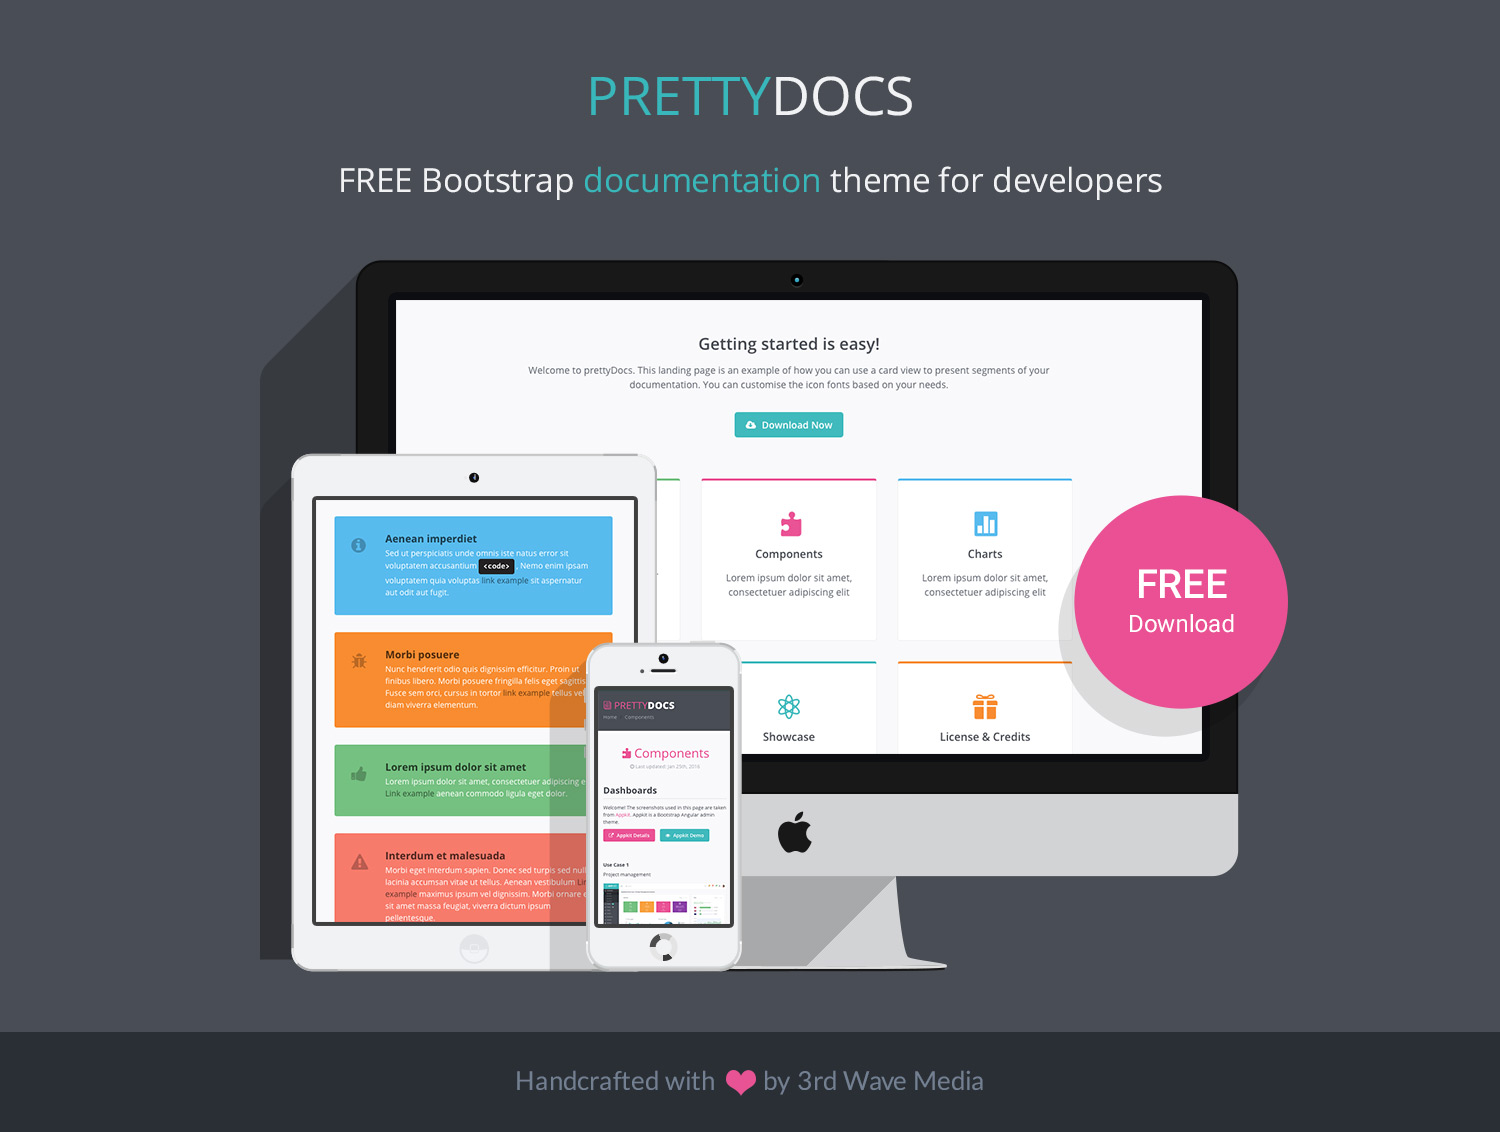 Free-Bootstrap-Theme-for-Project-Documentation-PrettyDocs